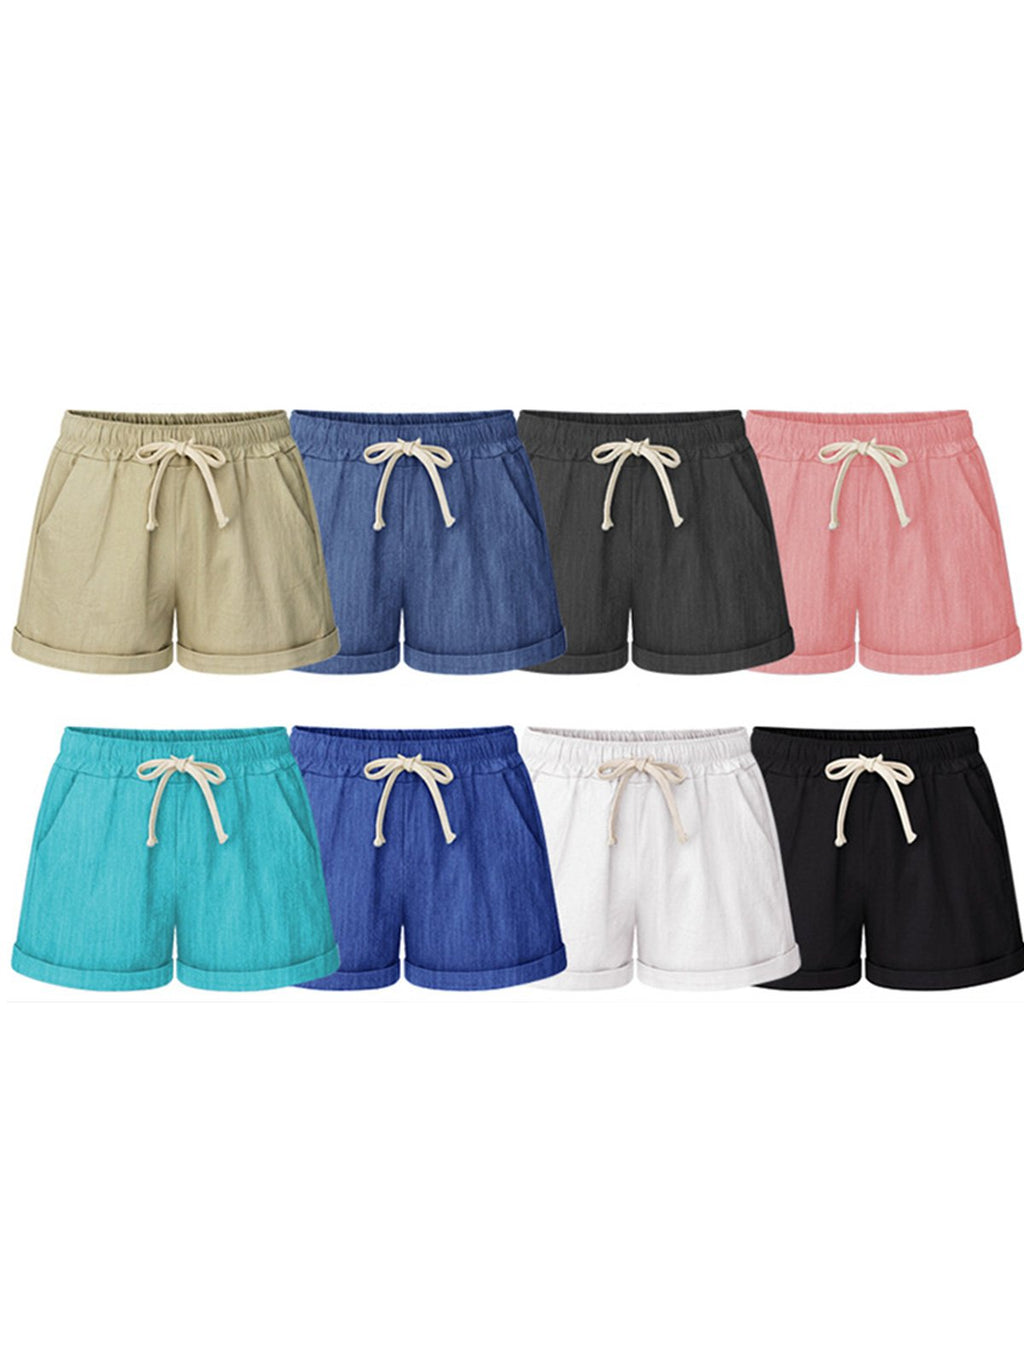 Plus Size Lace Up Elastic Waistband Loose Shorts